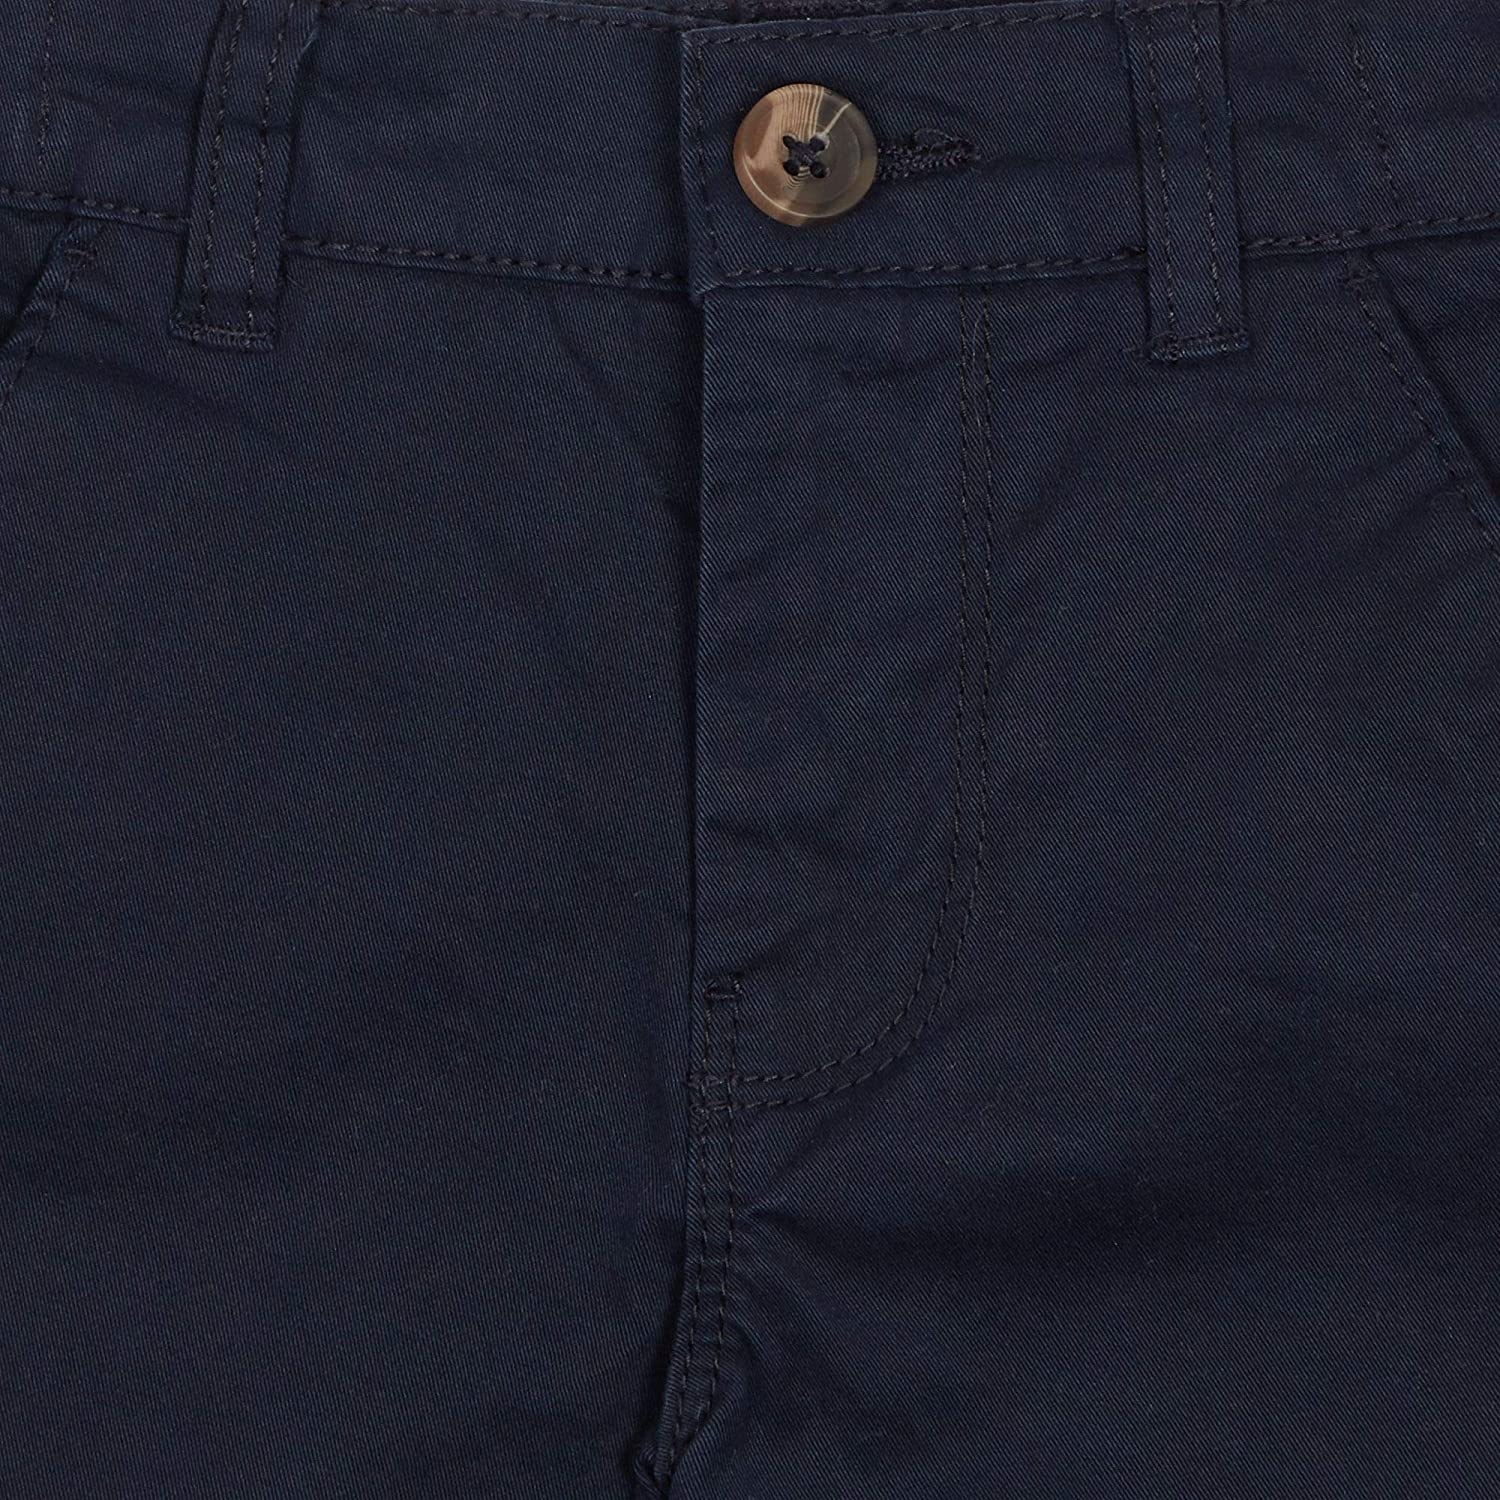 bluezoo Kids Boys Blue Chino Shorts